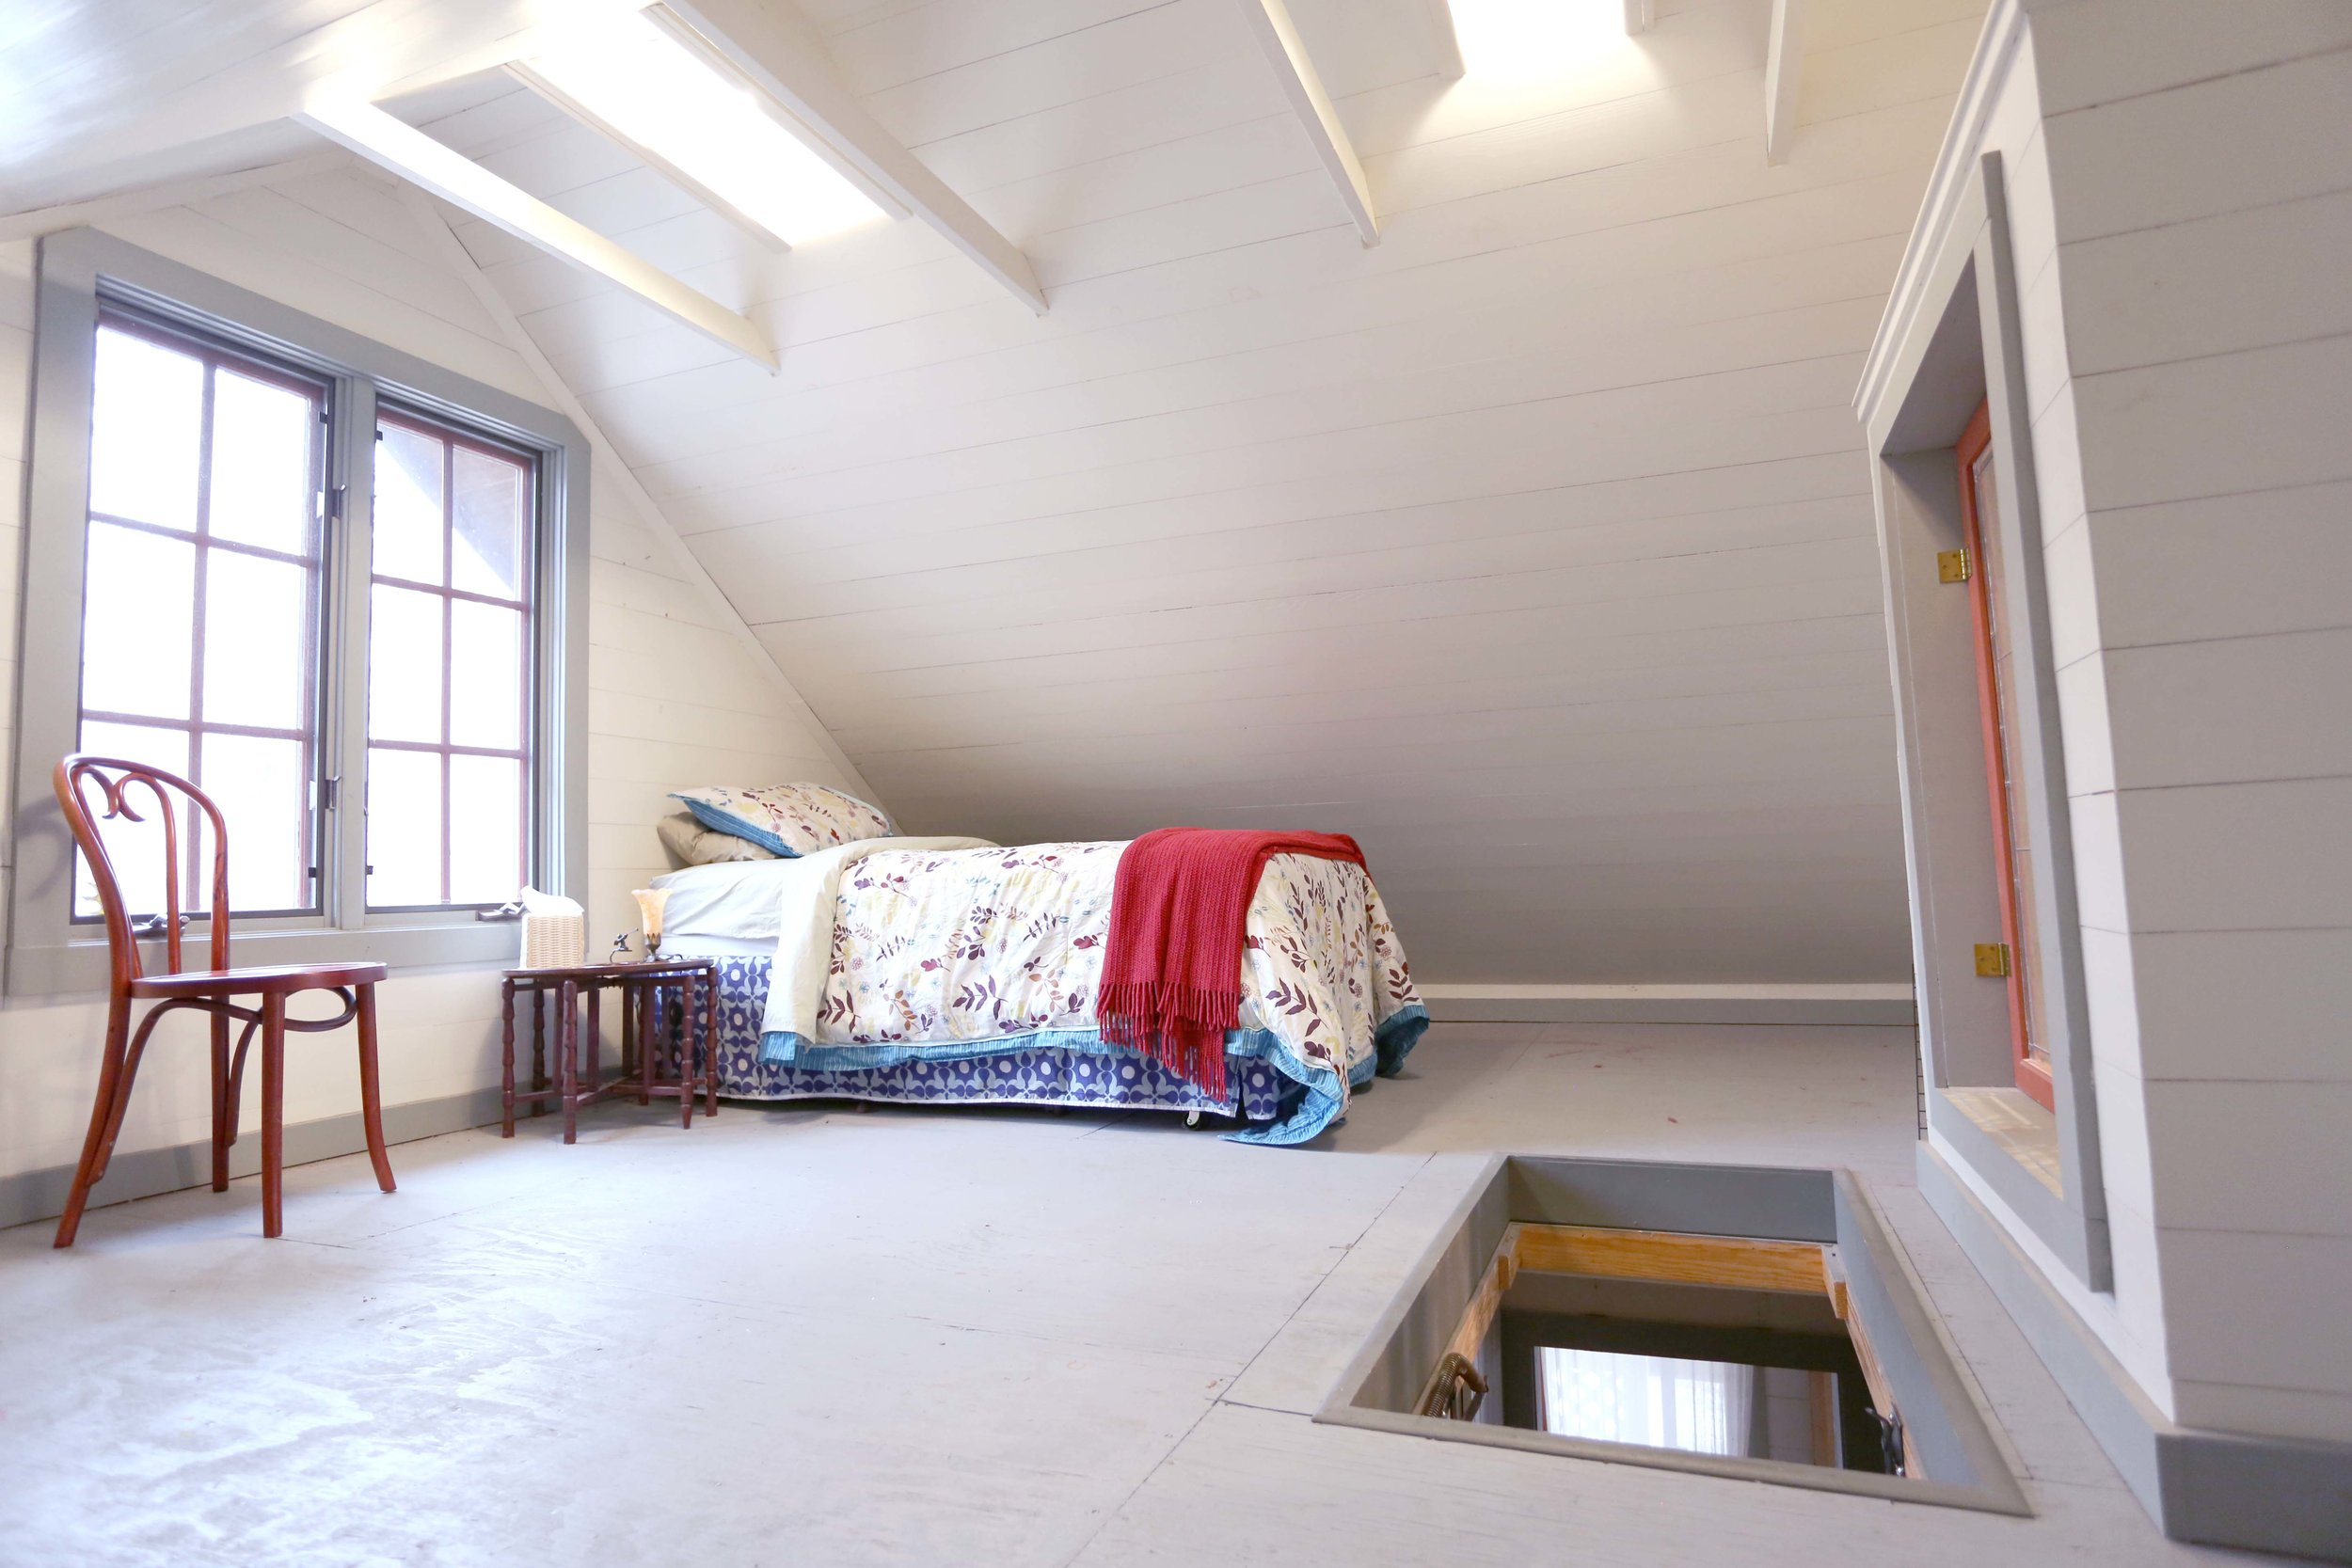 The LakeTrail loft shares a full bathroom with the Master Bedroom. This room cannot be rented unless its occupant is with the same party as those who rent LakeTrail Master. $45/weekdays; $60/weekends